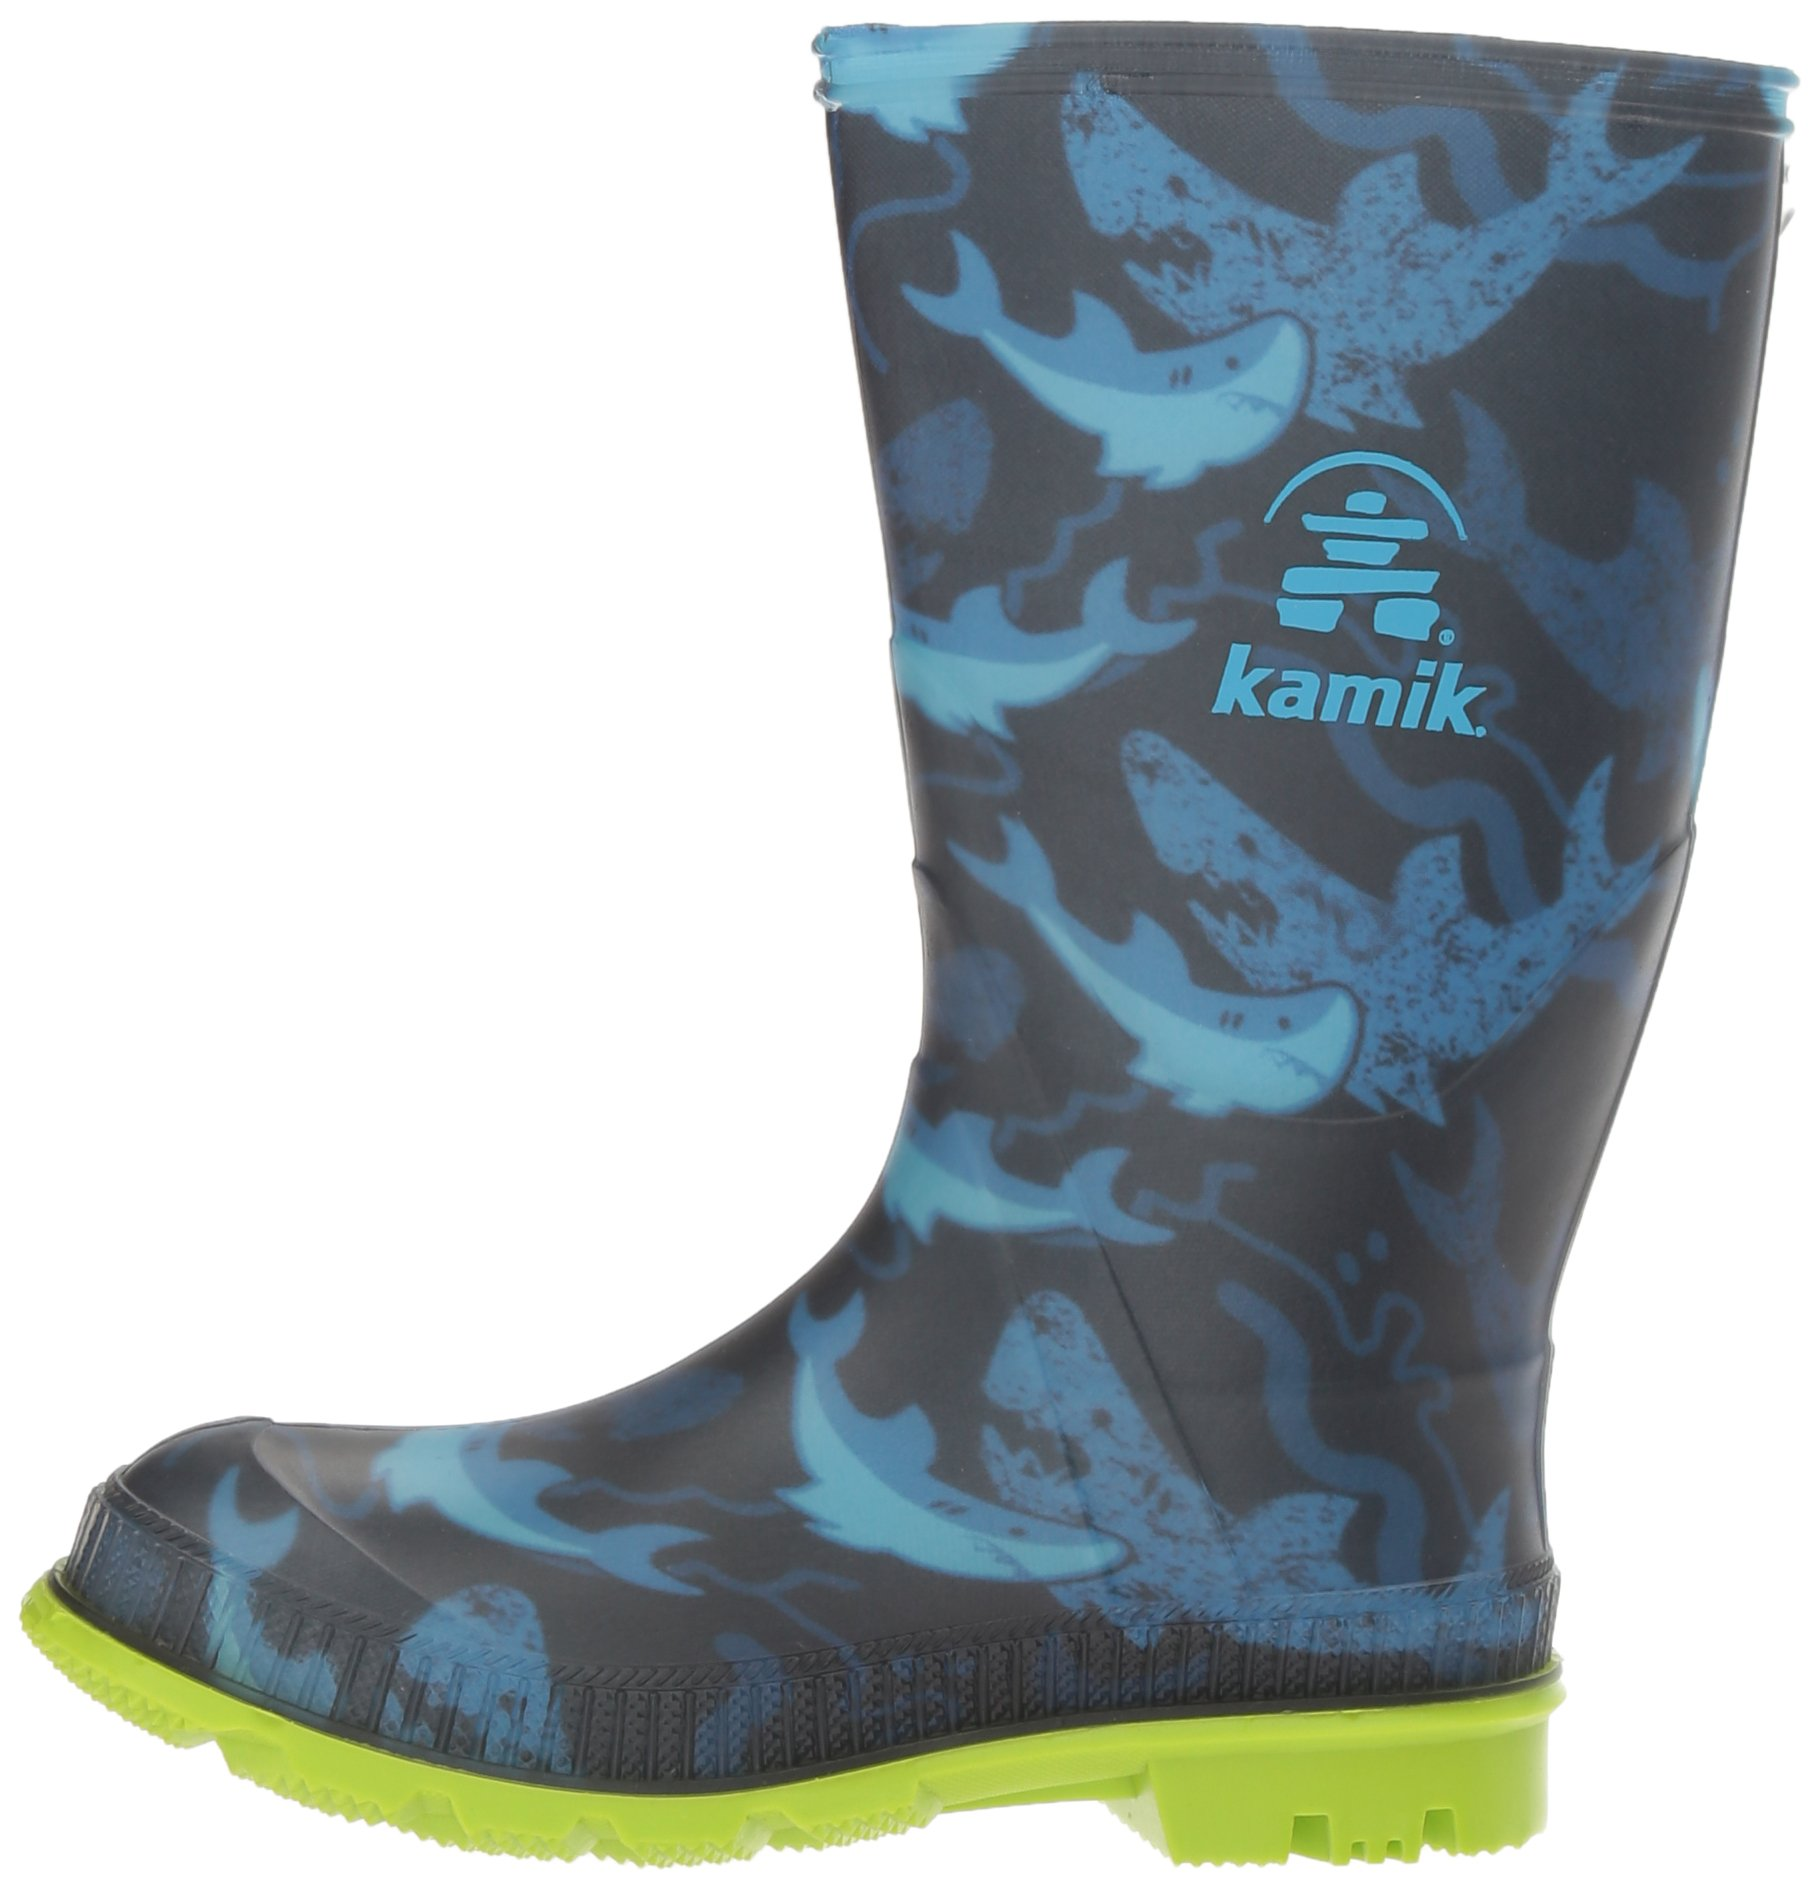 Kamik Boys' STOMP2/KIDS/CHA/4725 Rain Boot, Blue, 4 M US Big Kid by Kamik (Image #5)